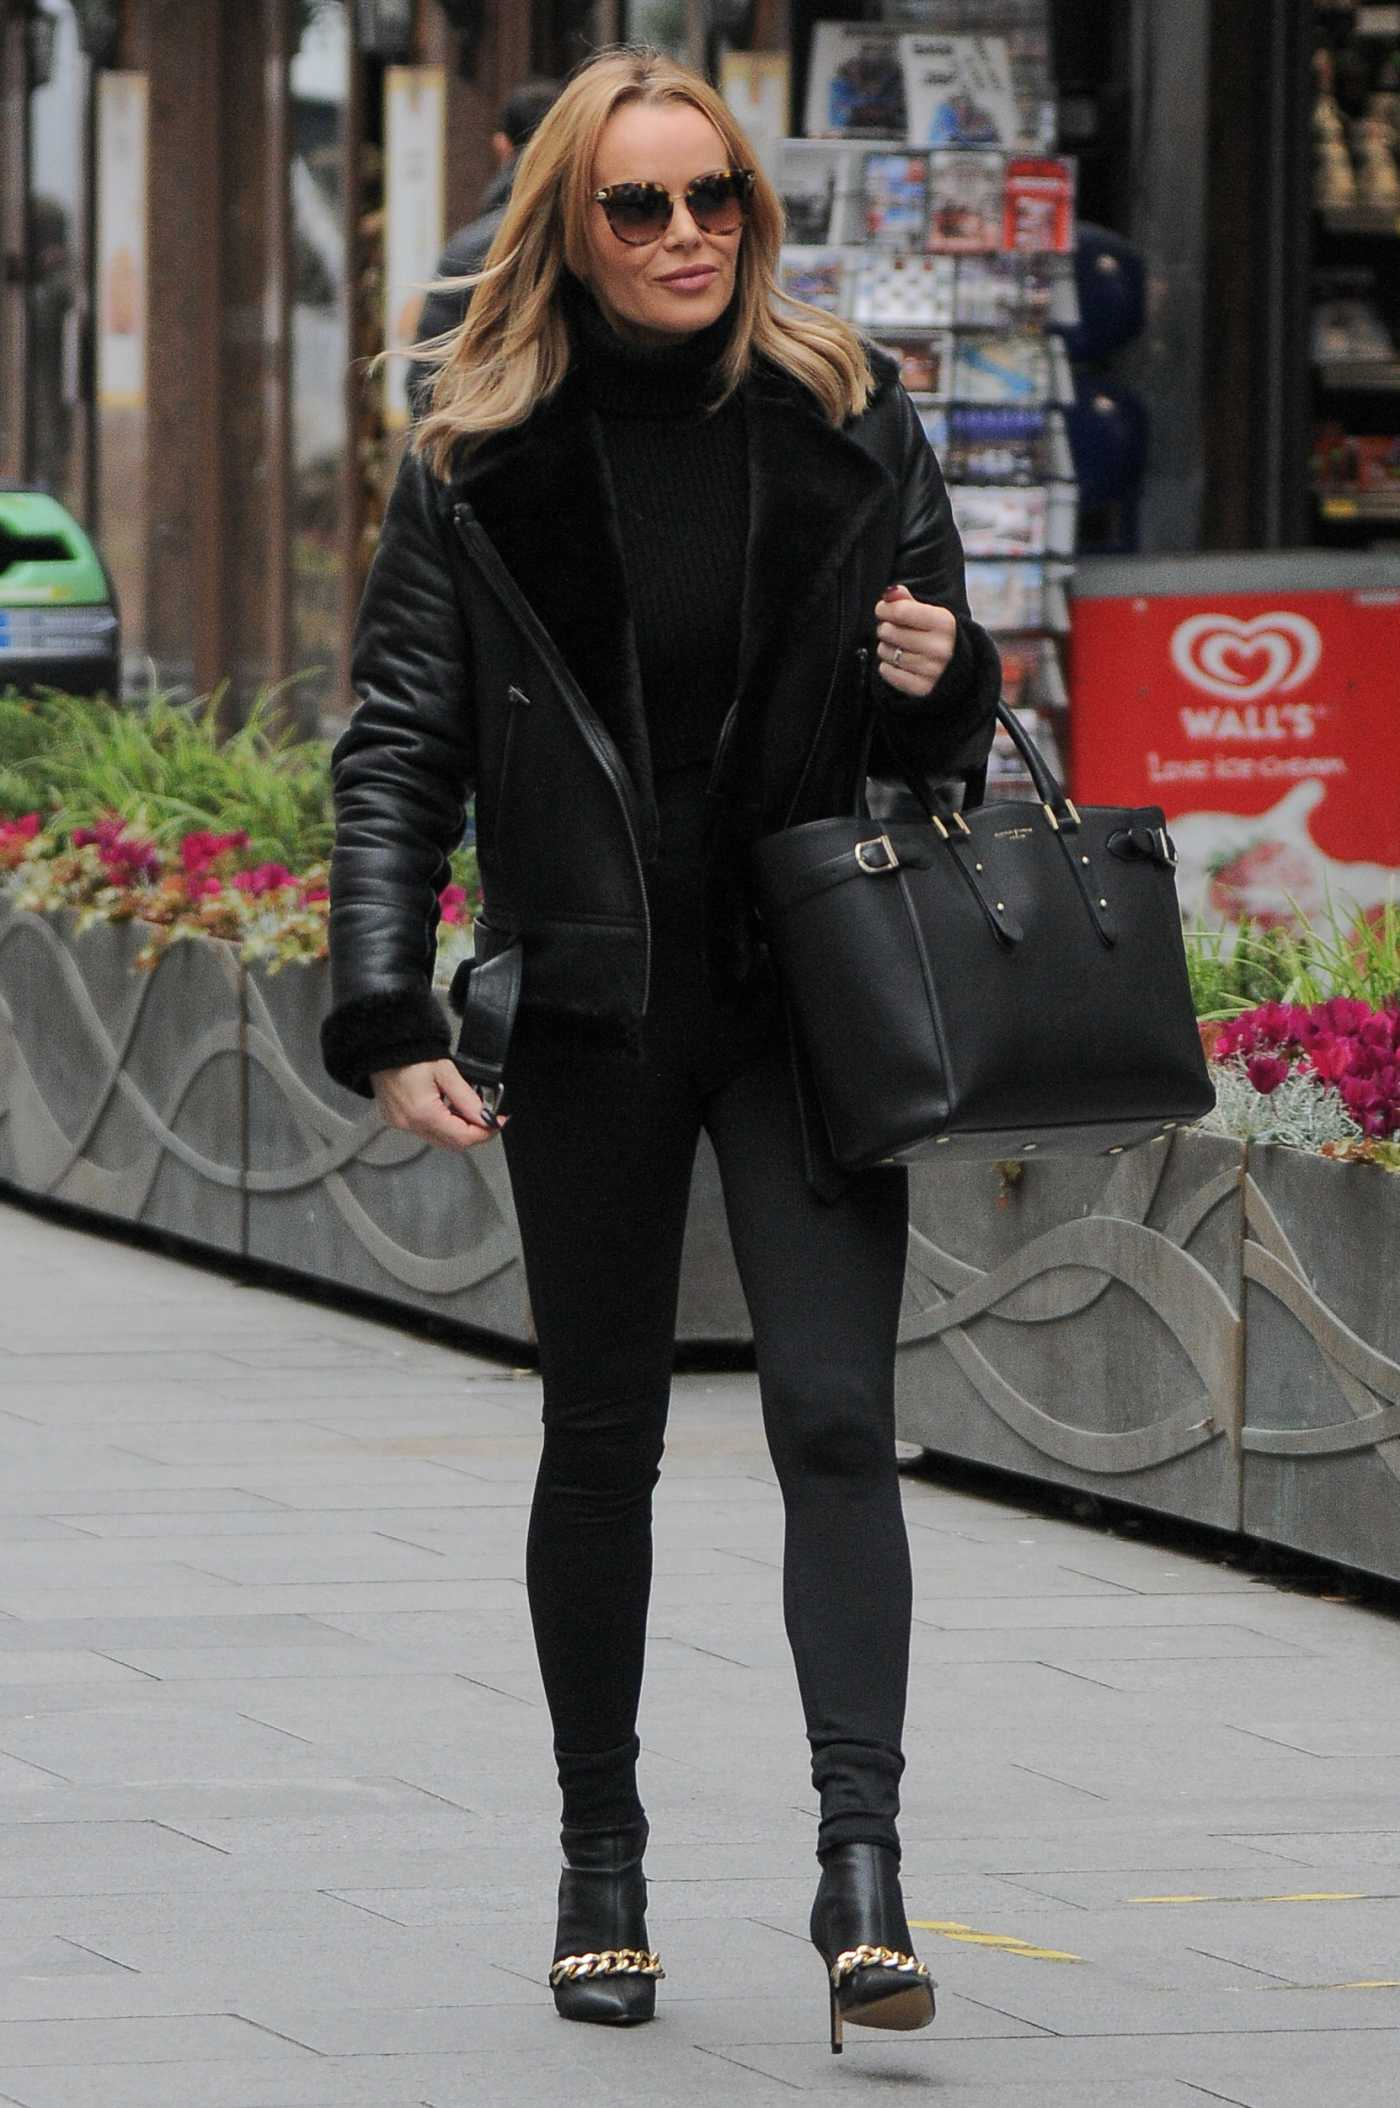 Amanda Holden in a Black Outfit Leaves the Global Studios in London 11/20/2020